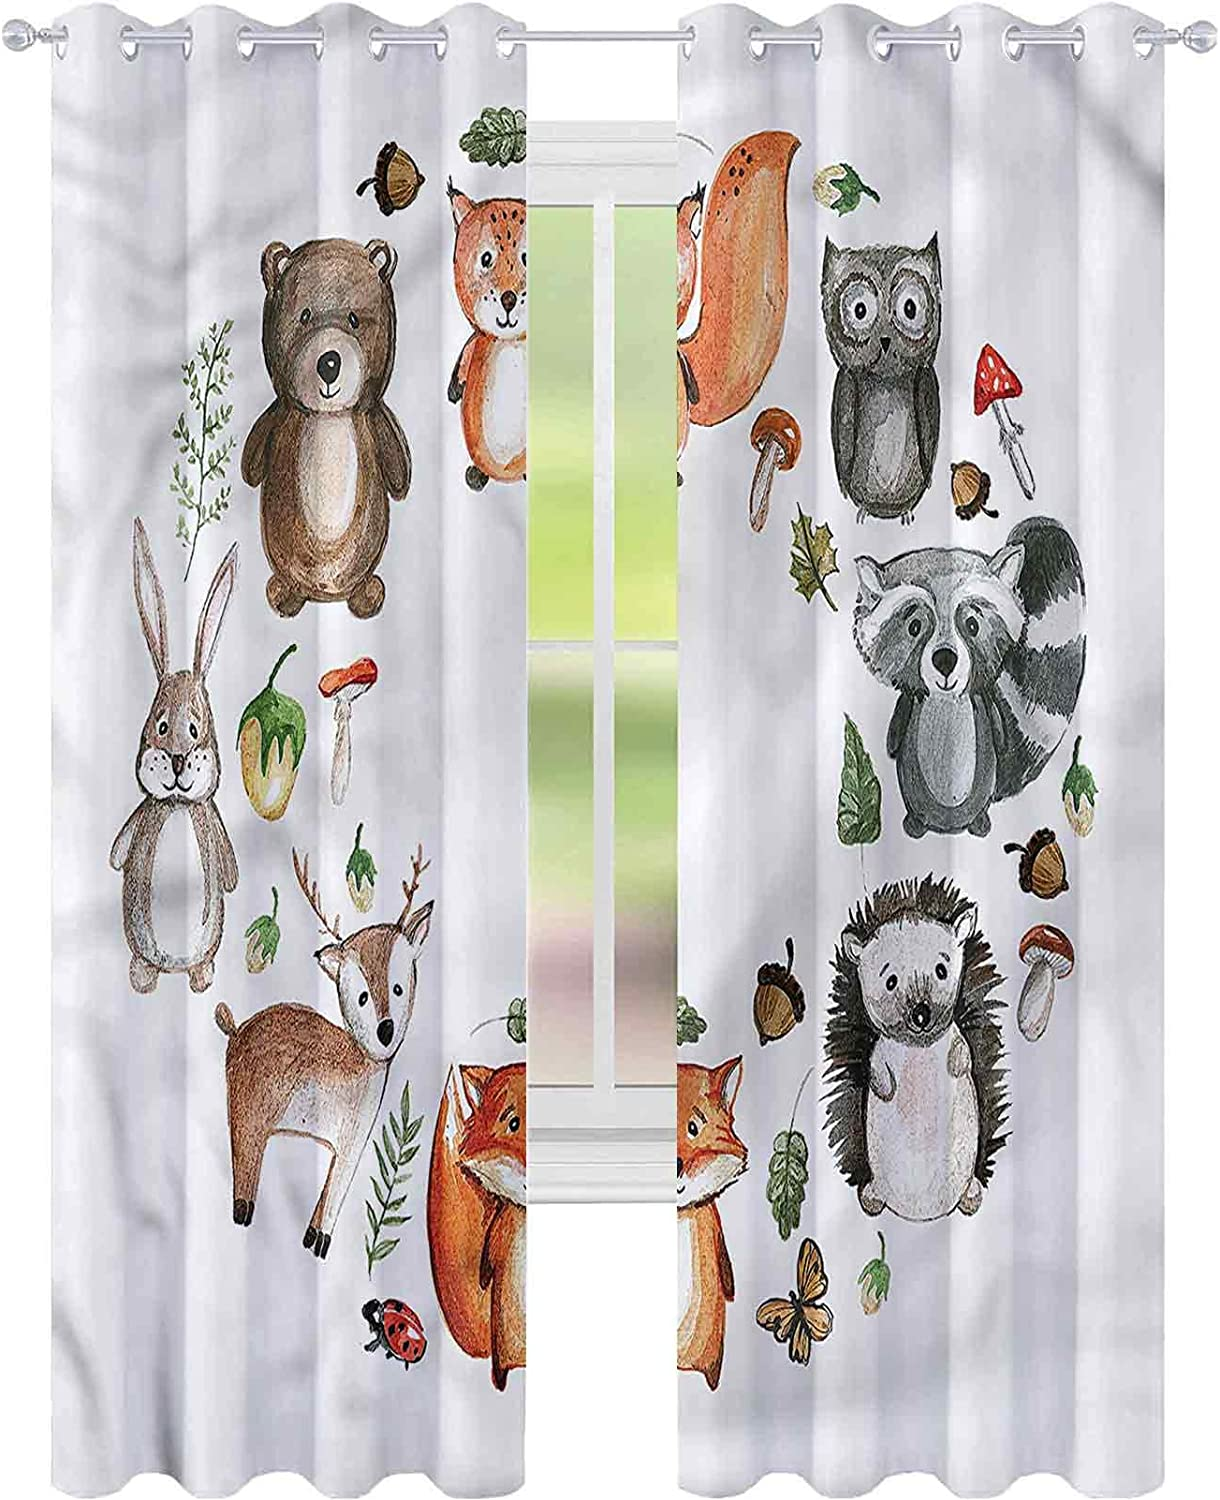 Window Curtain Drape Woodland Super beauty product restock quality top Animals of Forest W42 Acorn L72 x Max 49% OFF